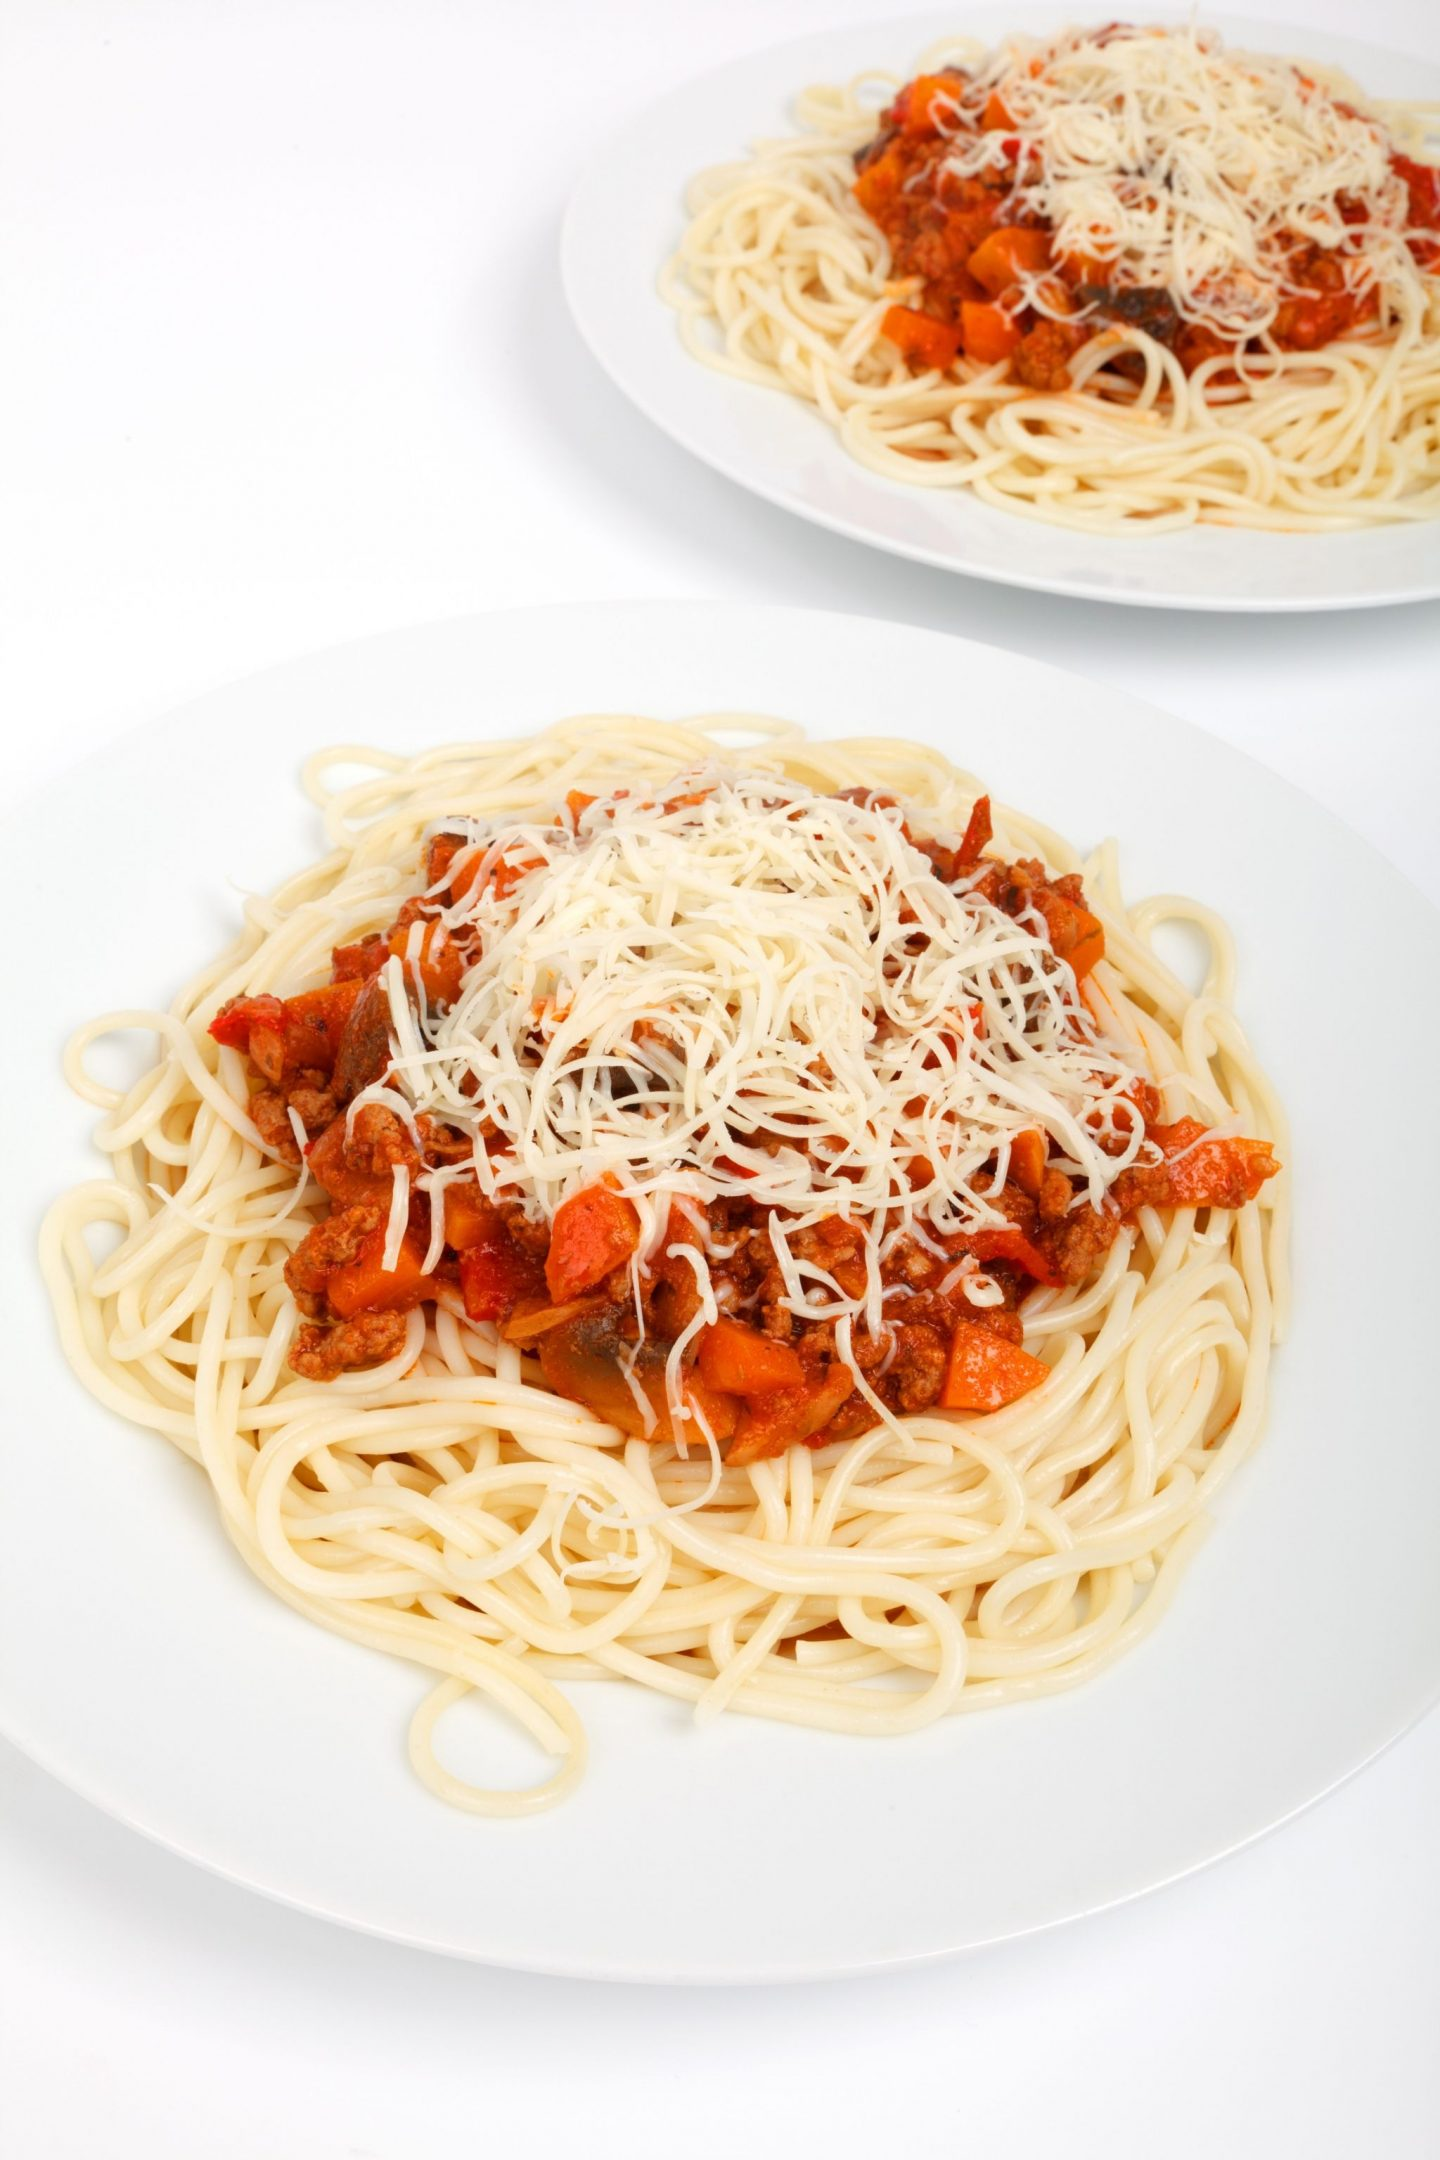 Two plates of spaghetti bolognese